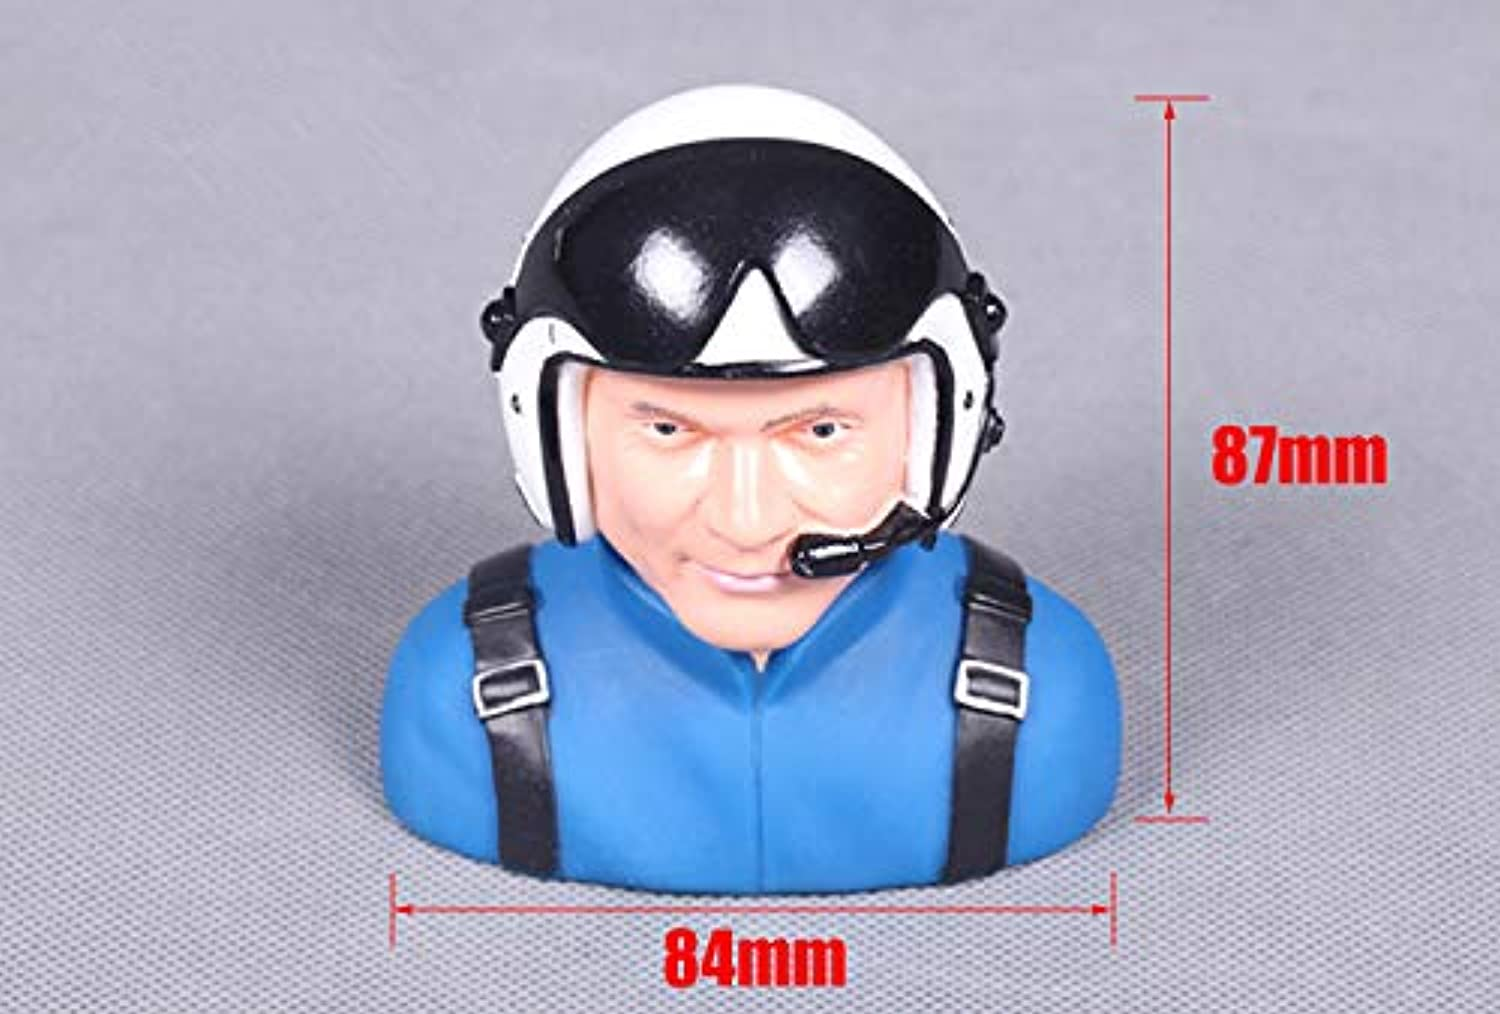 FMS RC Airplane Pilot Figure for 1400mm F3A 1300mm Yak 54